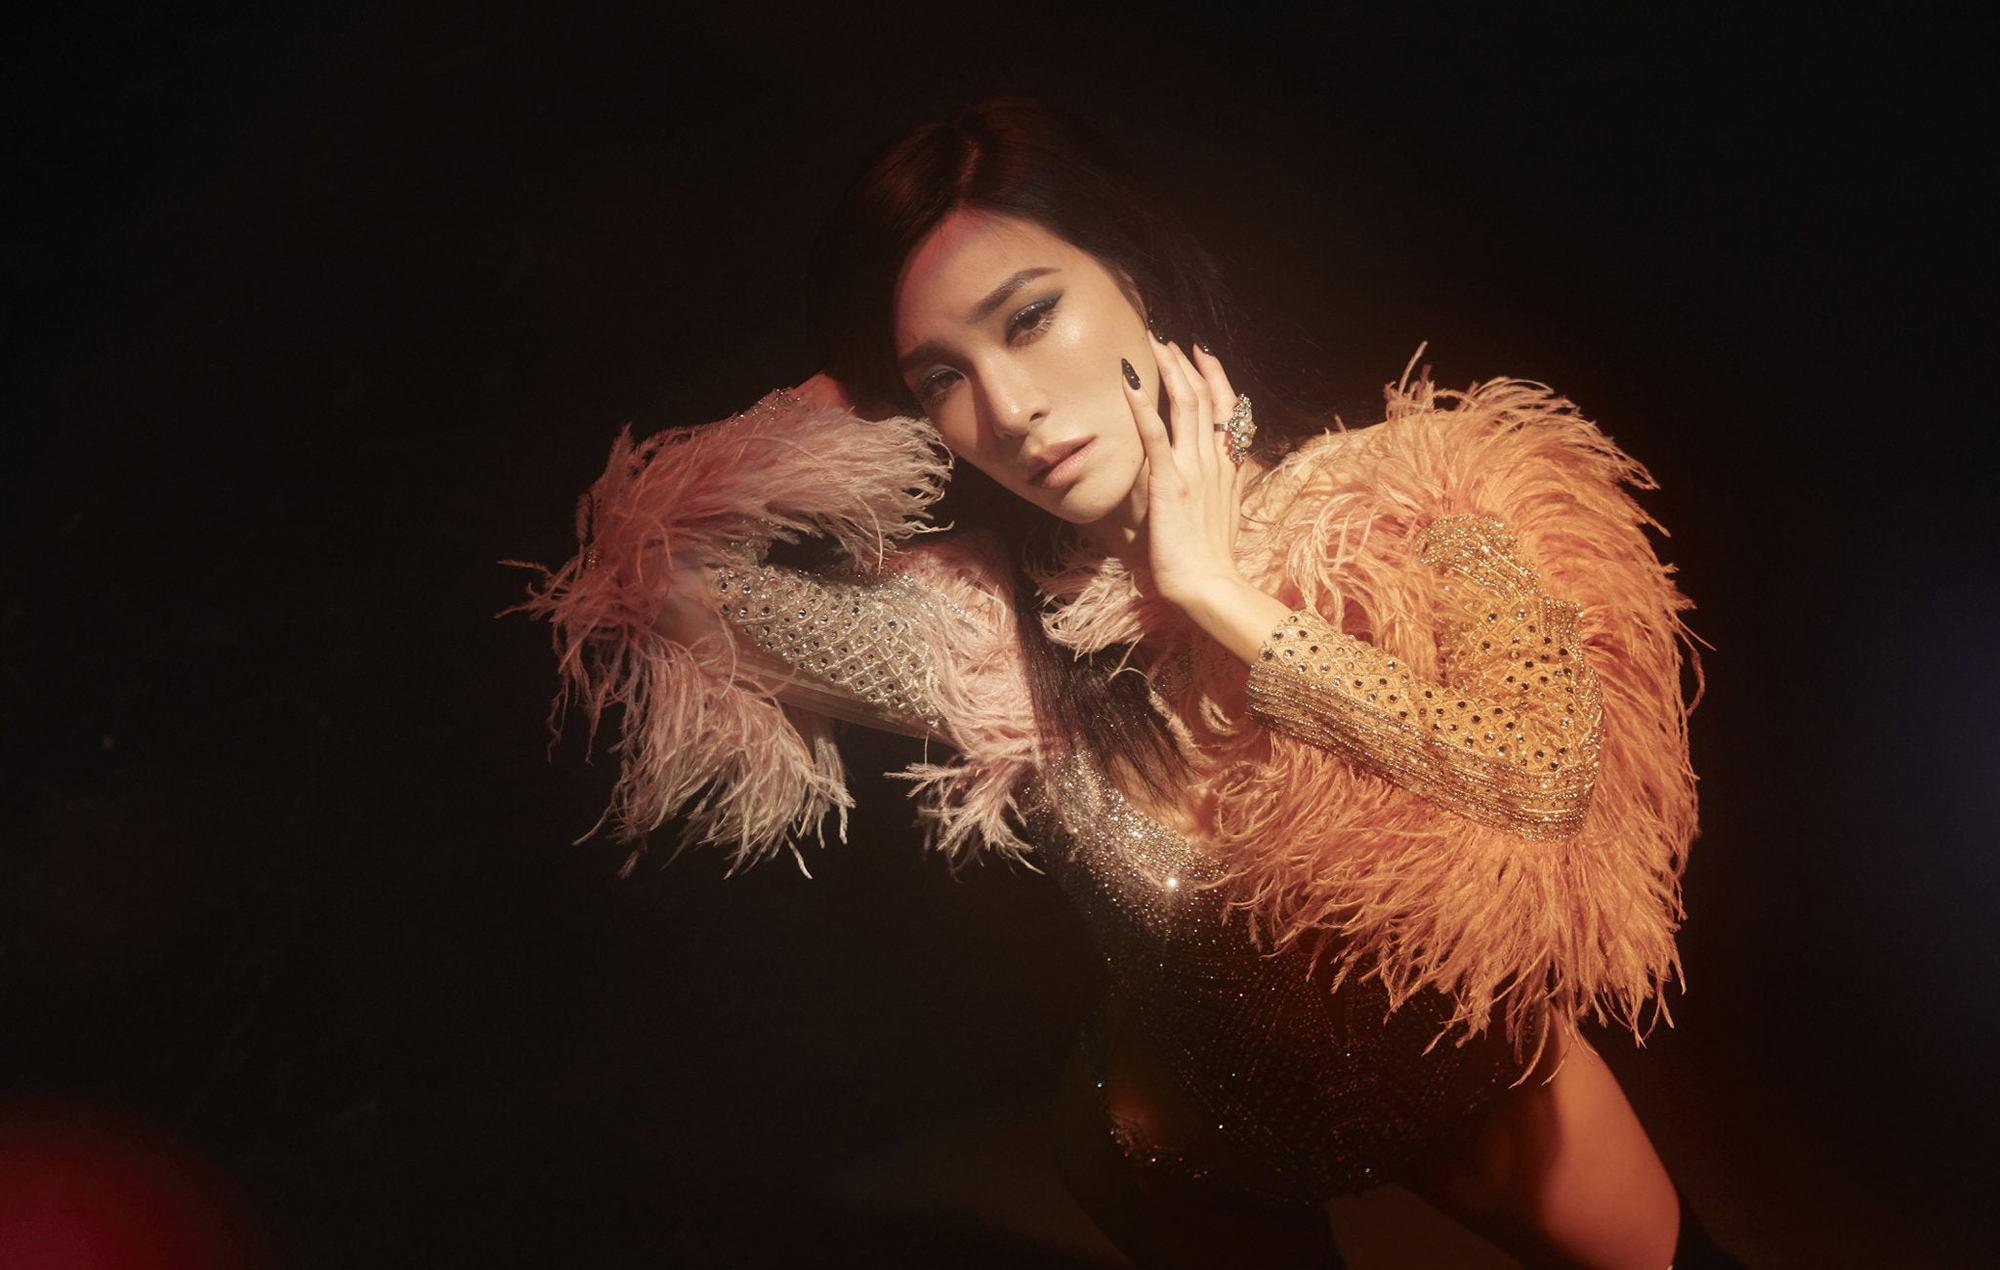 Tiffany Young releases fierce music video for new song Run For Your Life